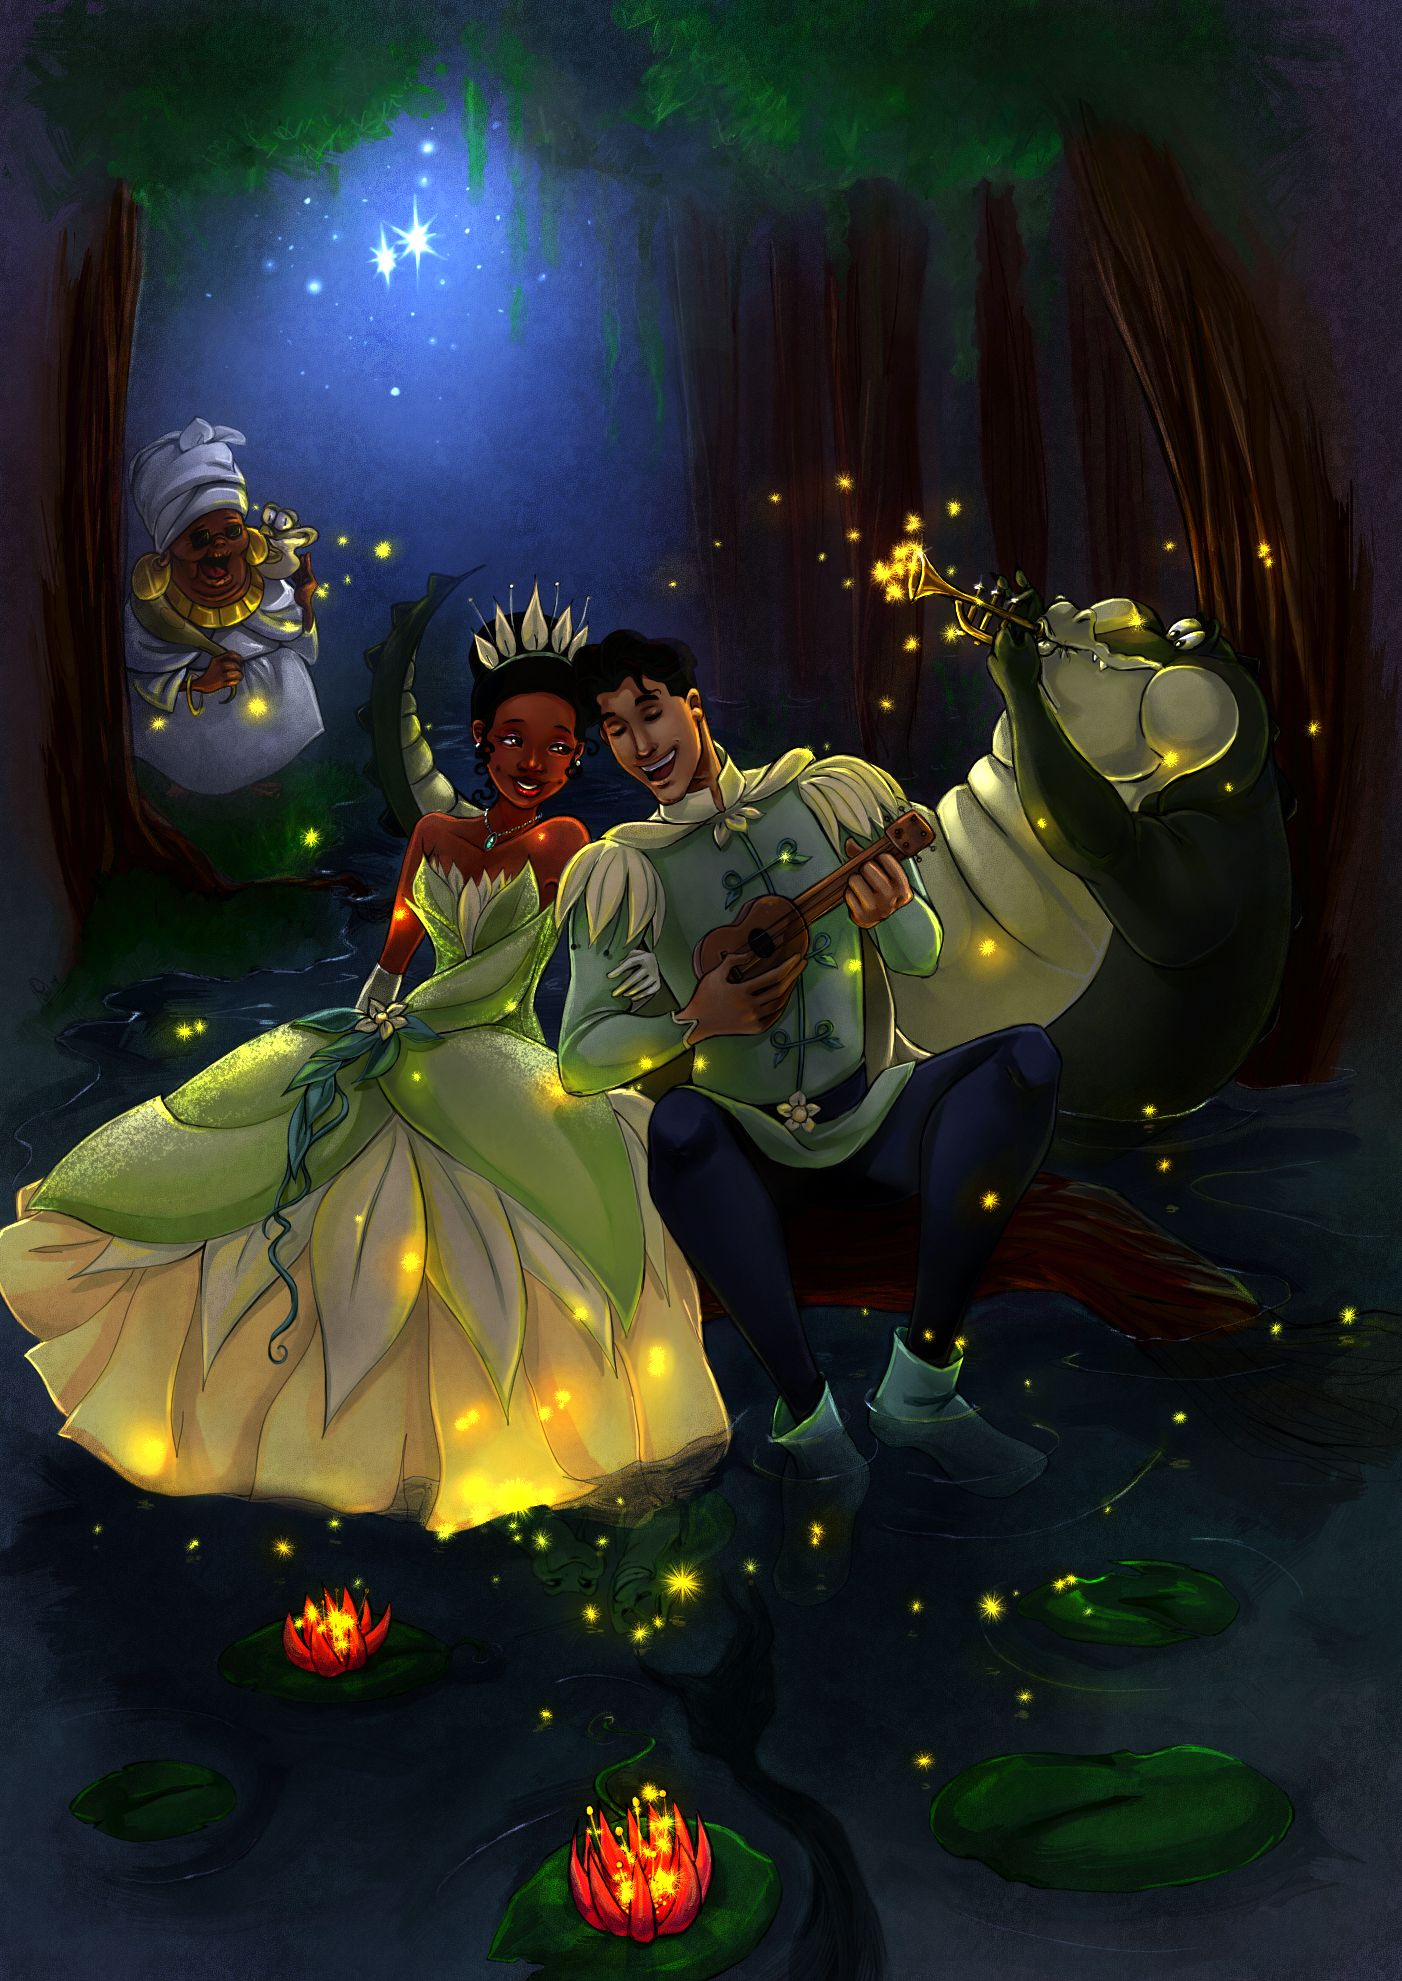 Princess And The Frog Ray And Evangeline